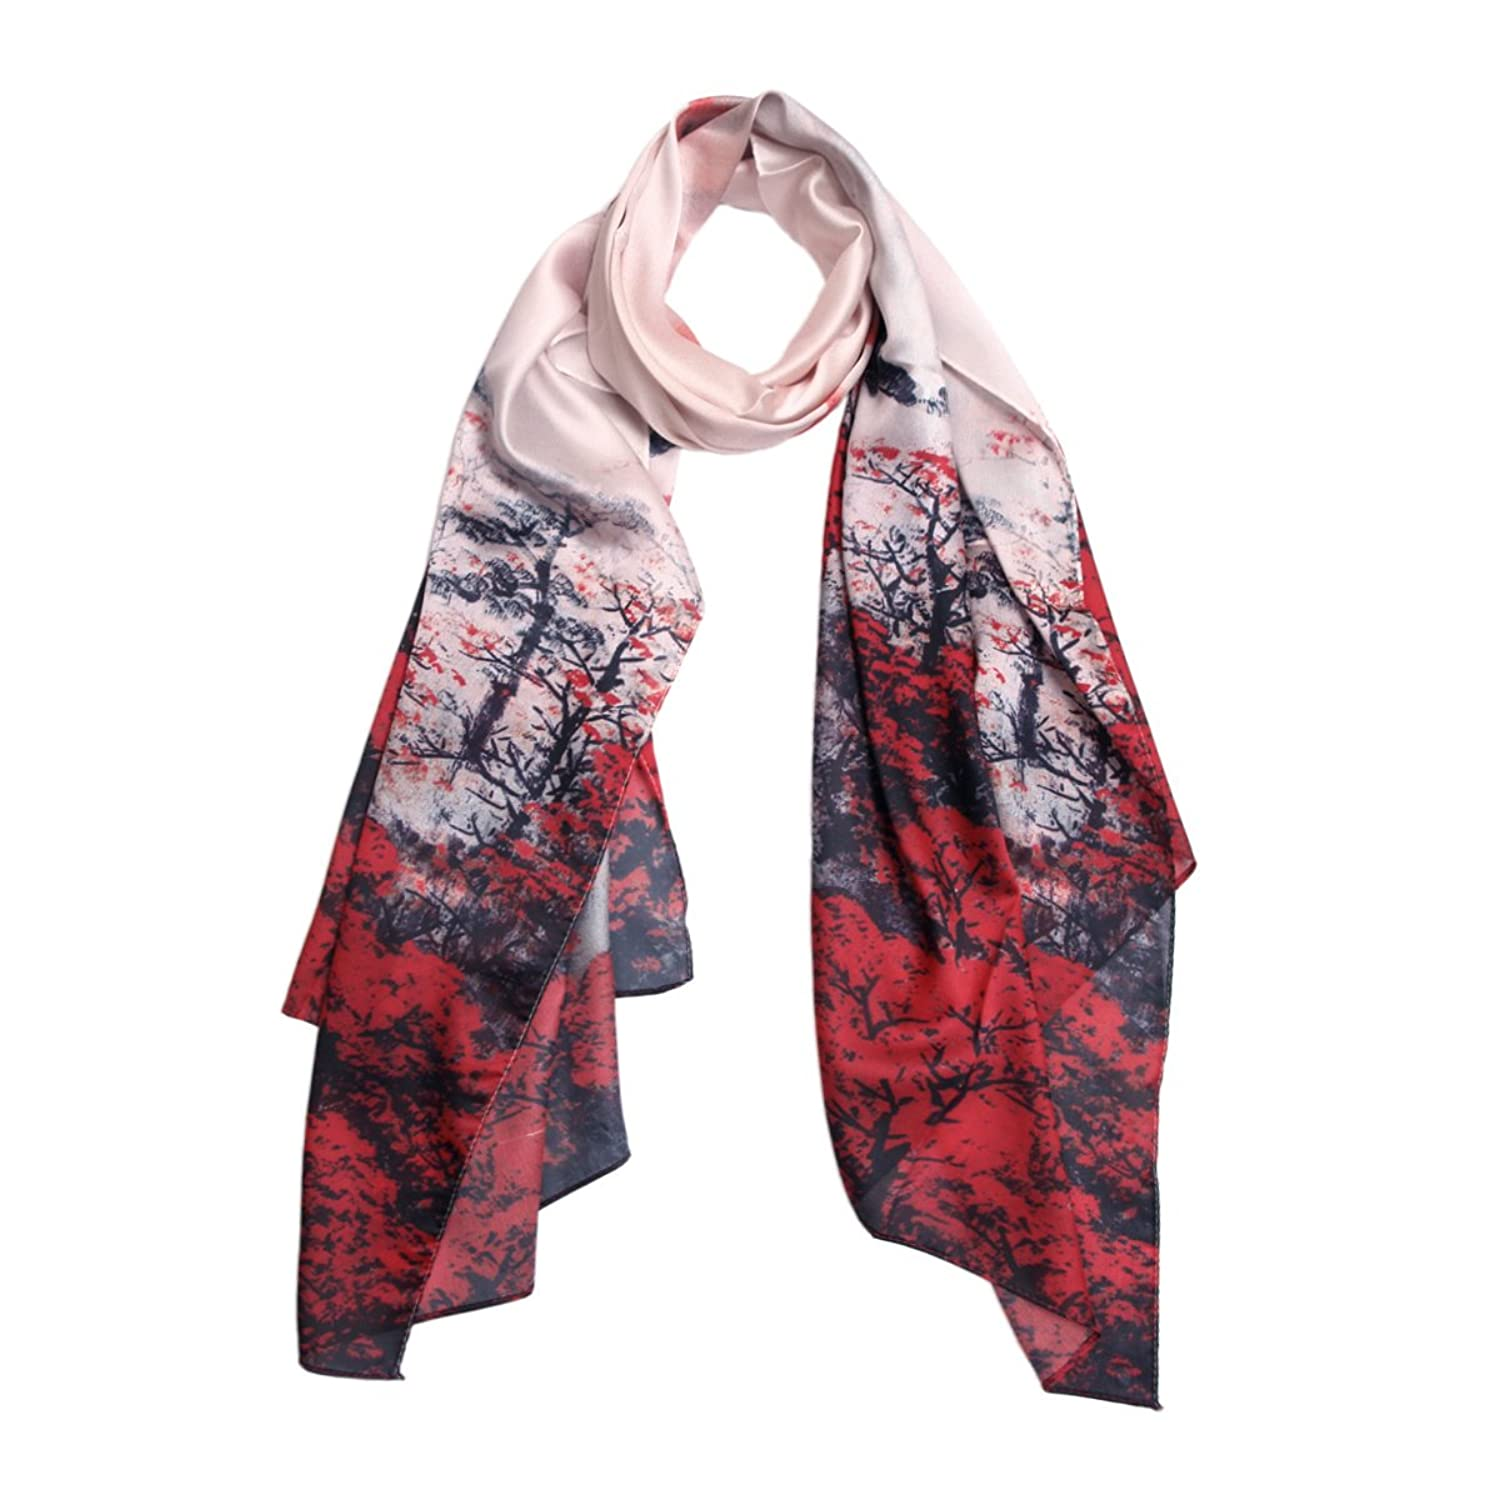 TrendsBlue Premium 100% Pure Silk Floral Scenery Painting Scarf Shawl Wrap